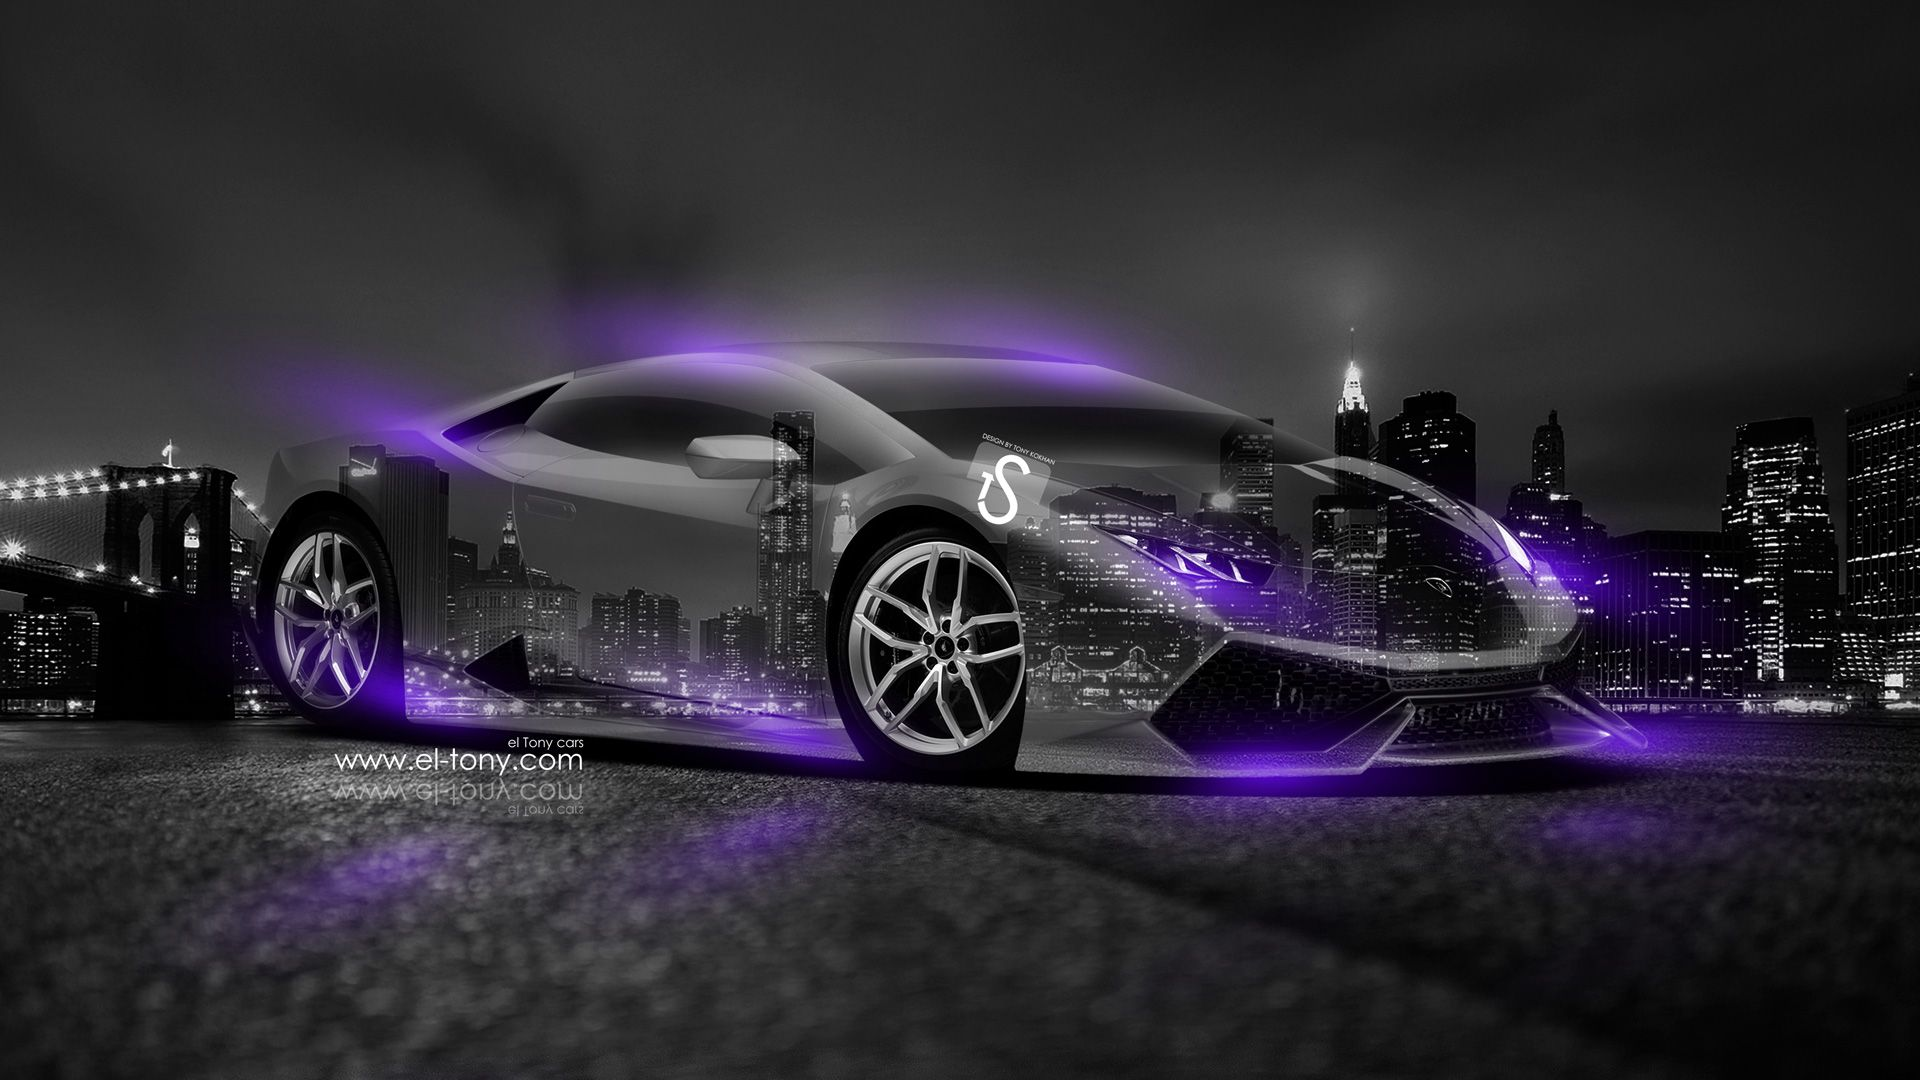 Superieur Lamborghini Huracan | Wallpapers Lamborghini Huracan Back Water Car 2014 Lamborghini  Huracan .